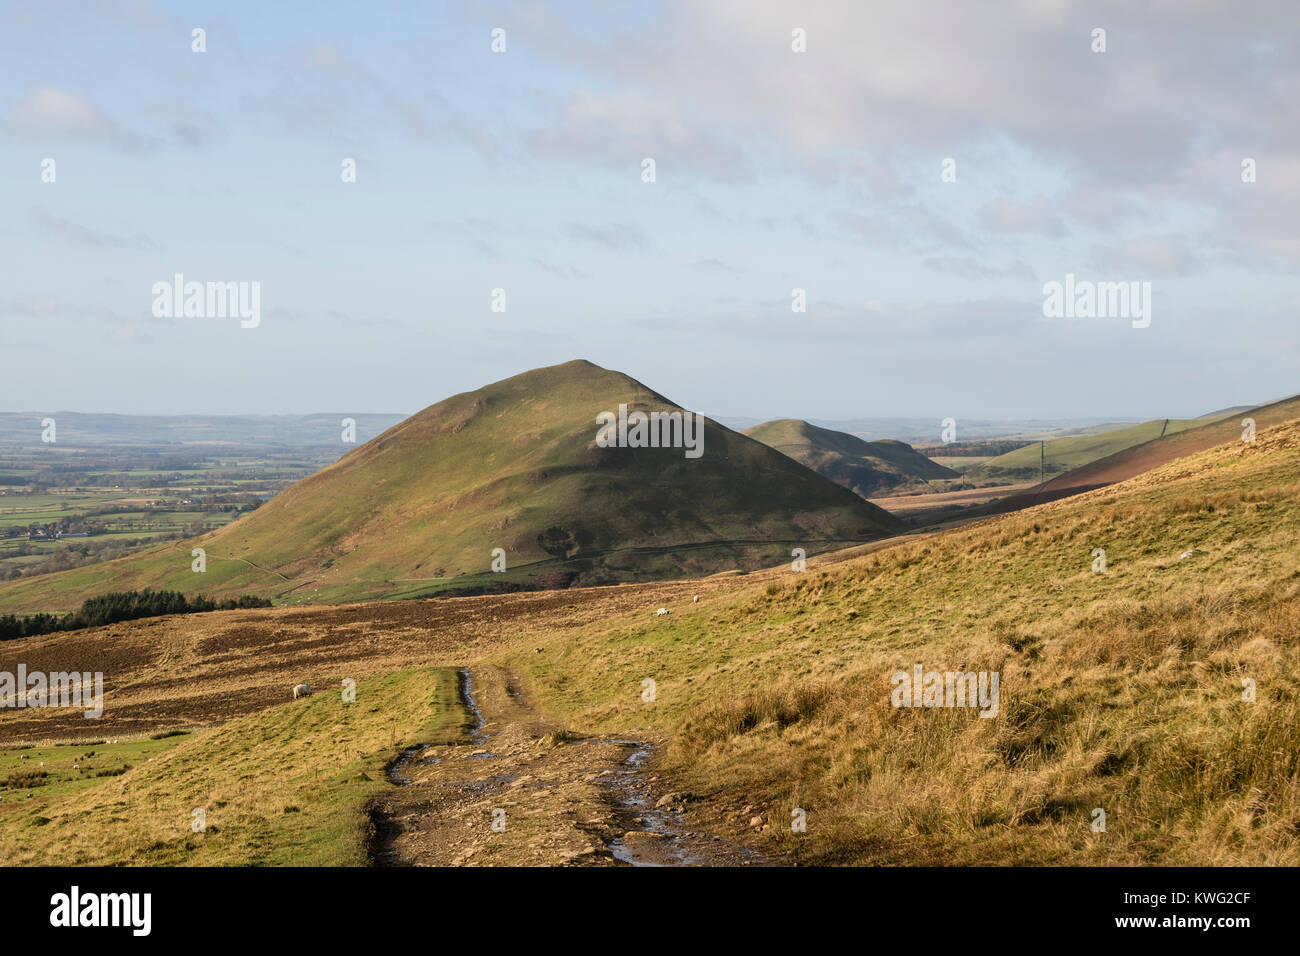 Dufton Pike and Brownber Hill Viewed From the Pennine Way Near Dodd Hill, Eden Valley, Cumbria, UK - Stock Image